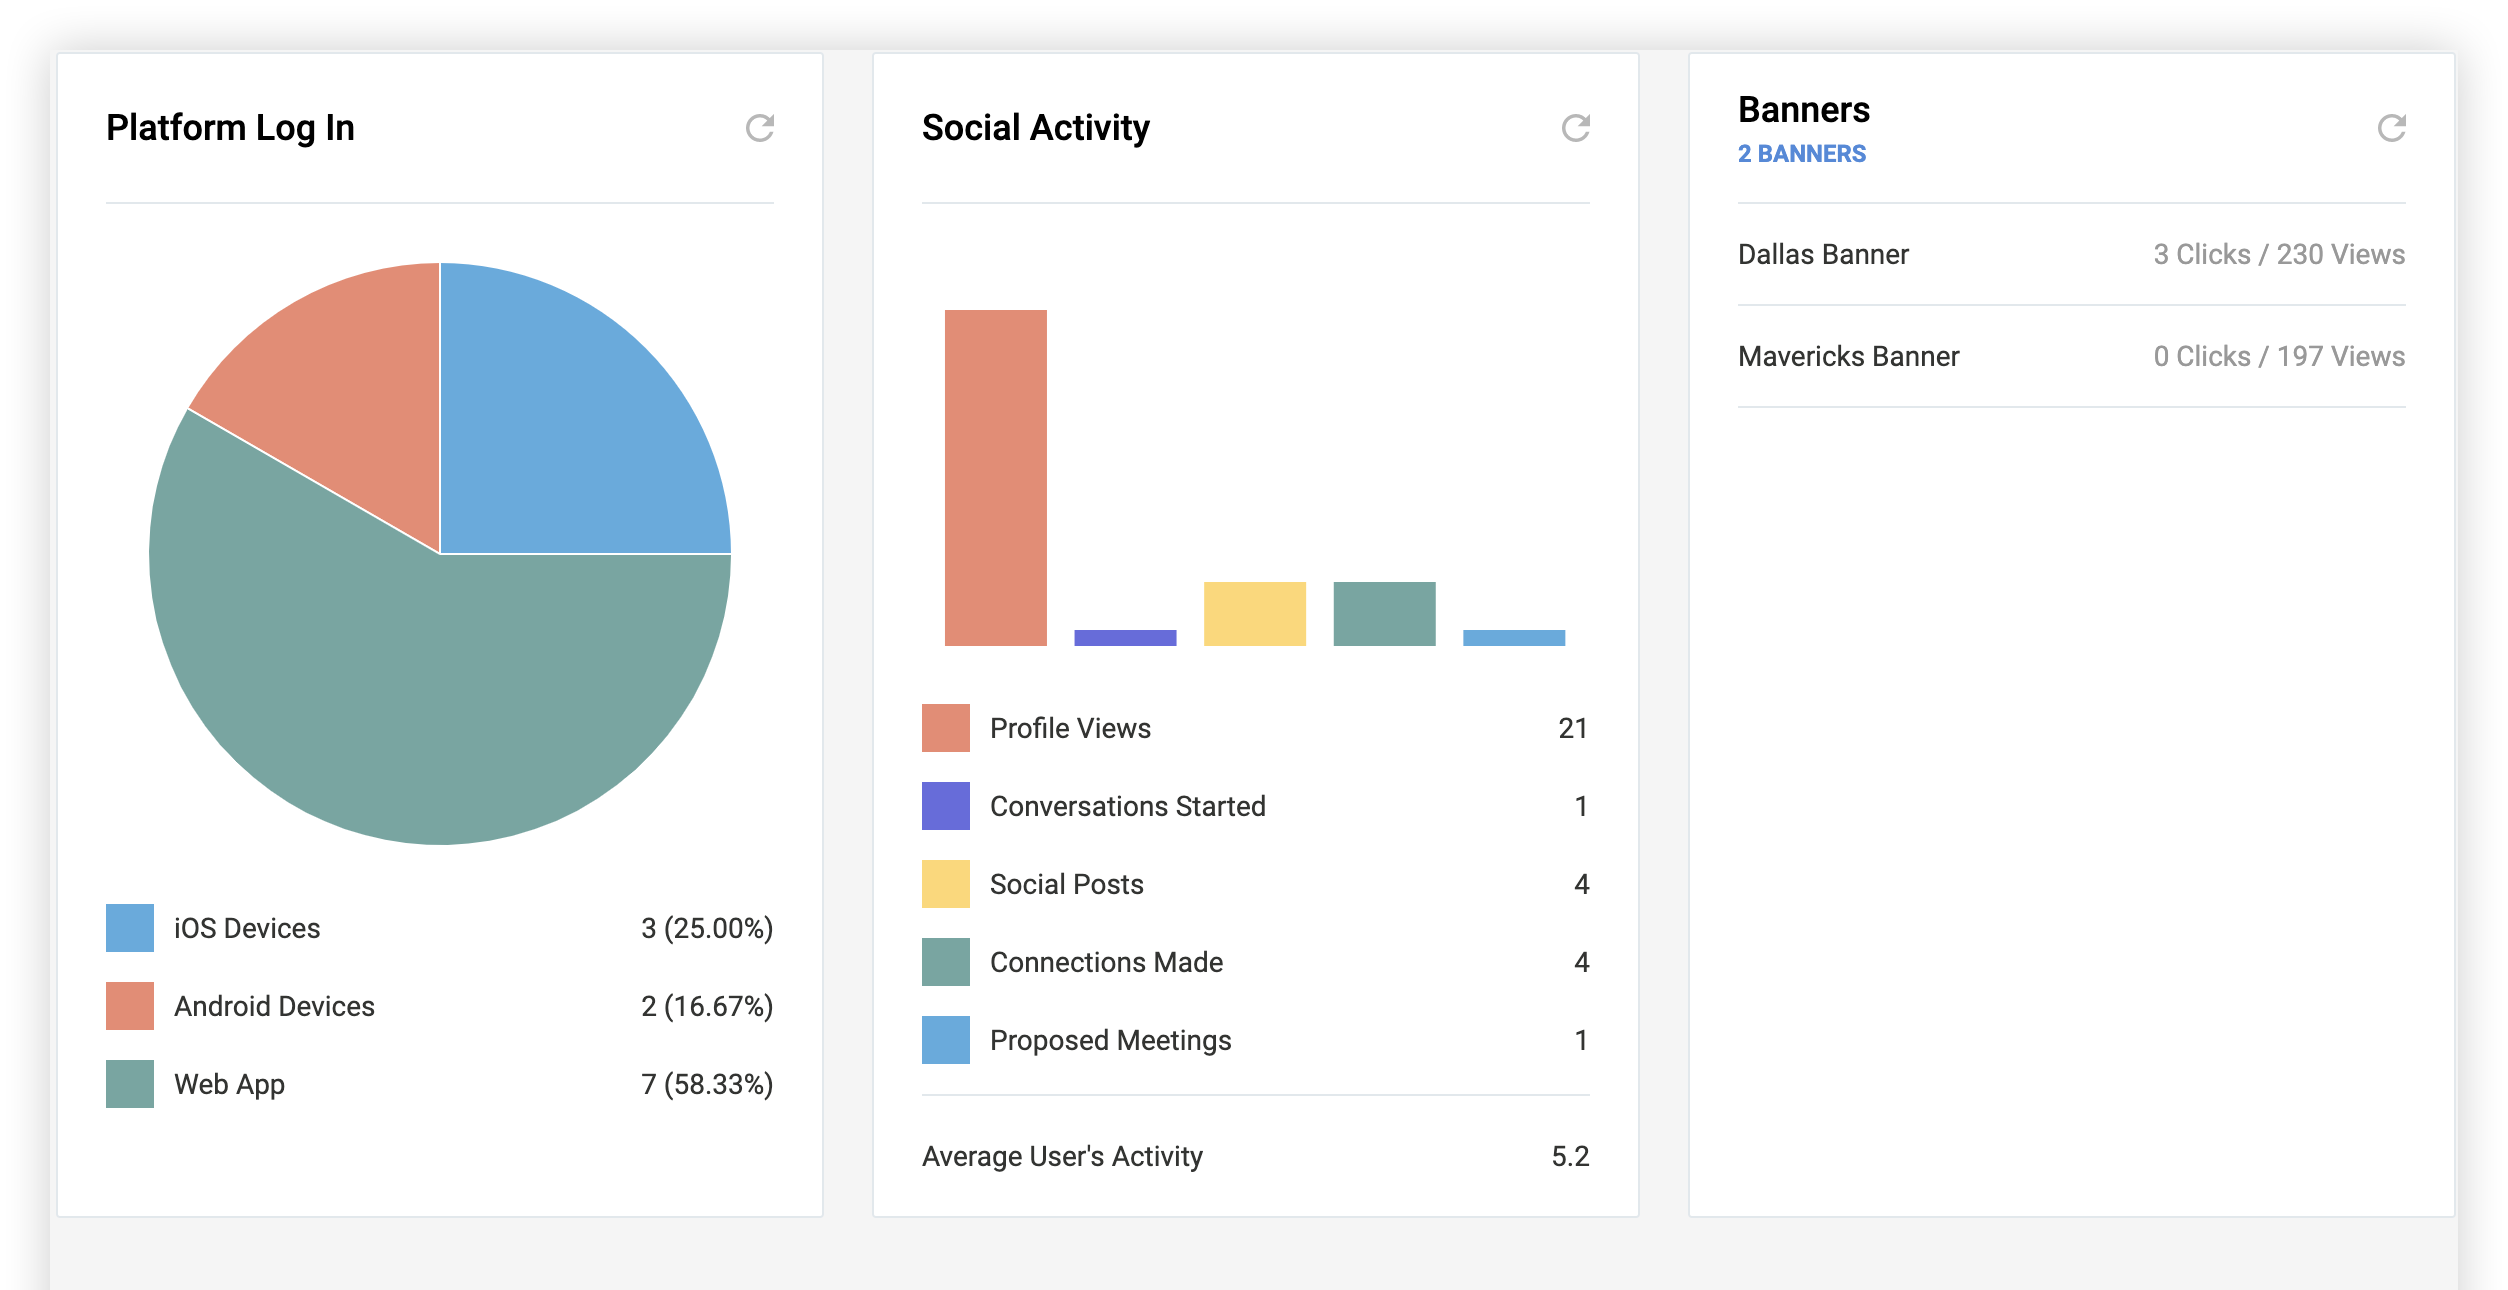 Screenshot of the Platform Log In, Social Activity, and Banners charts.